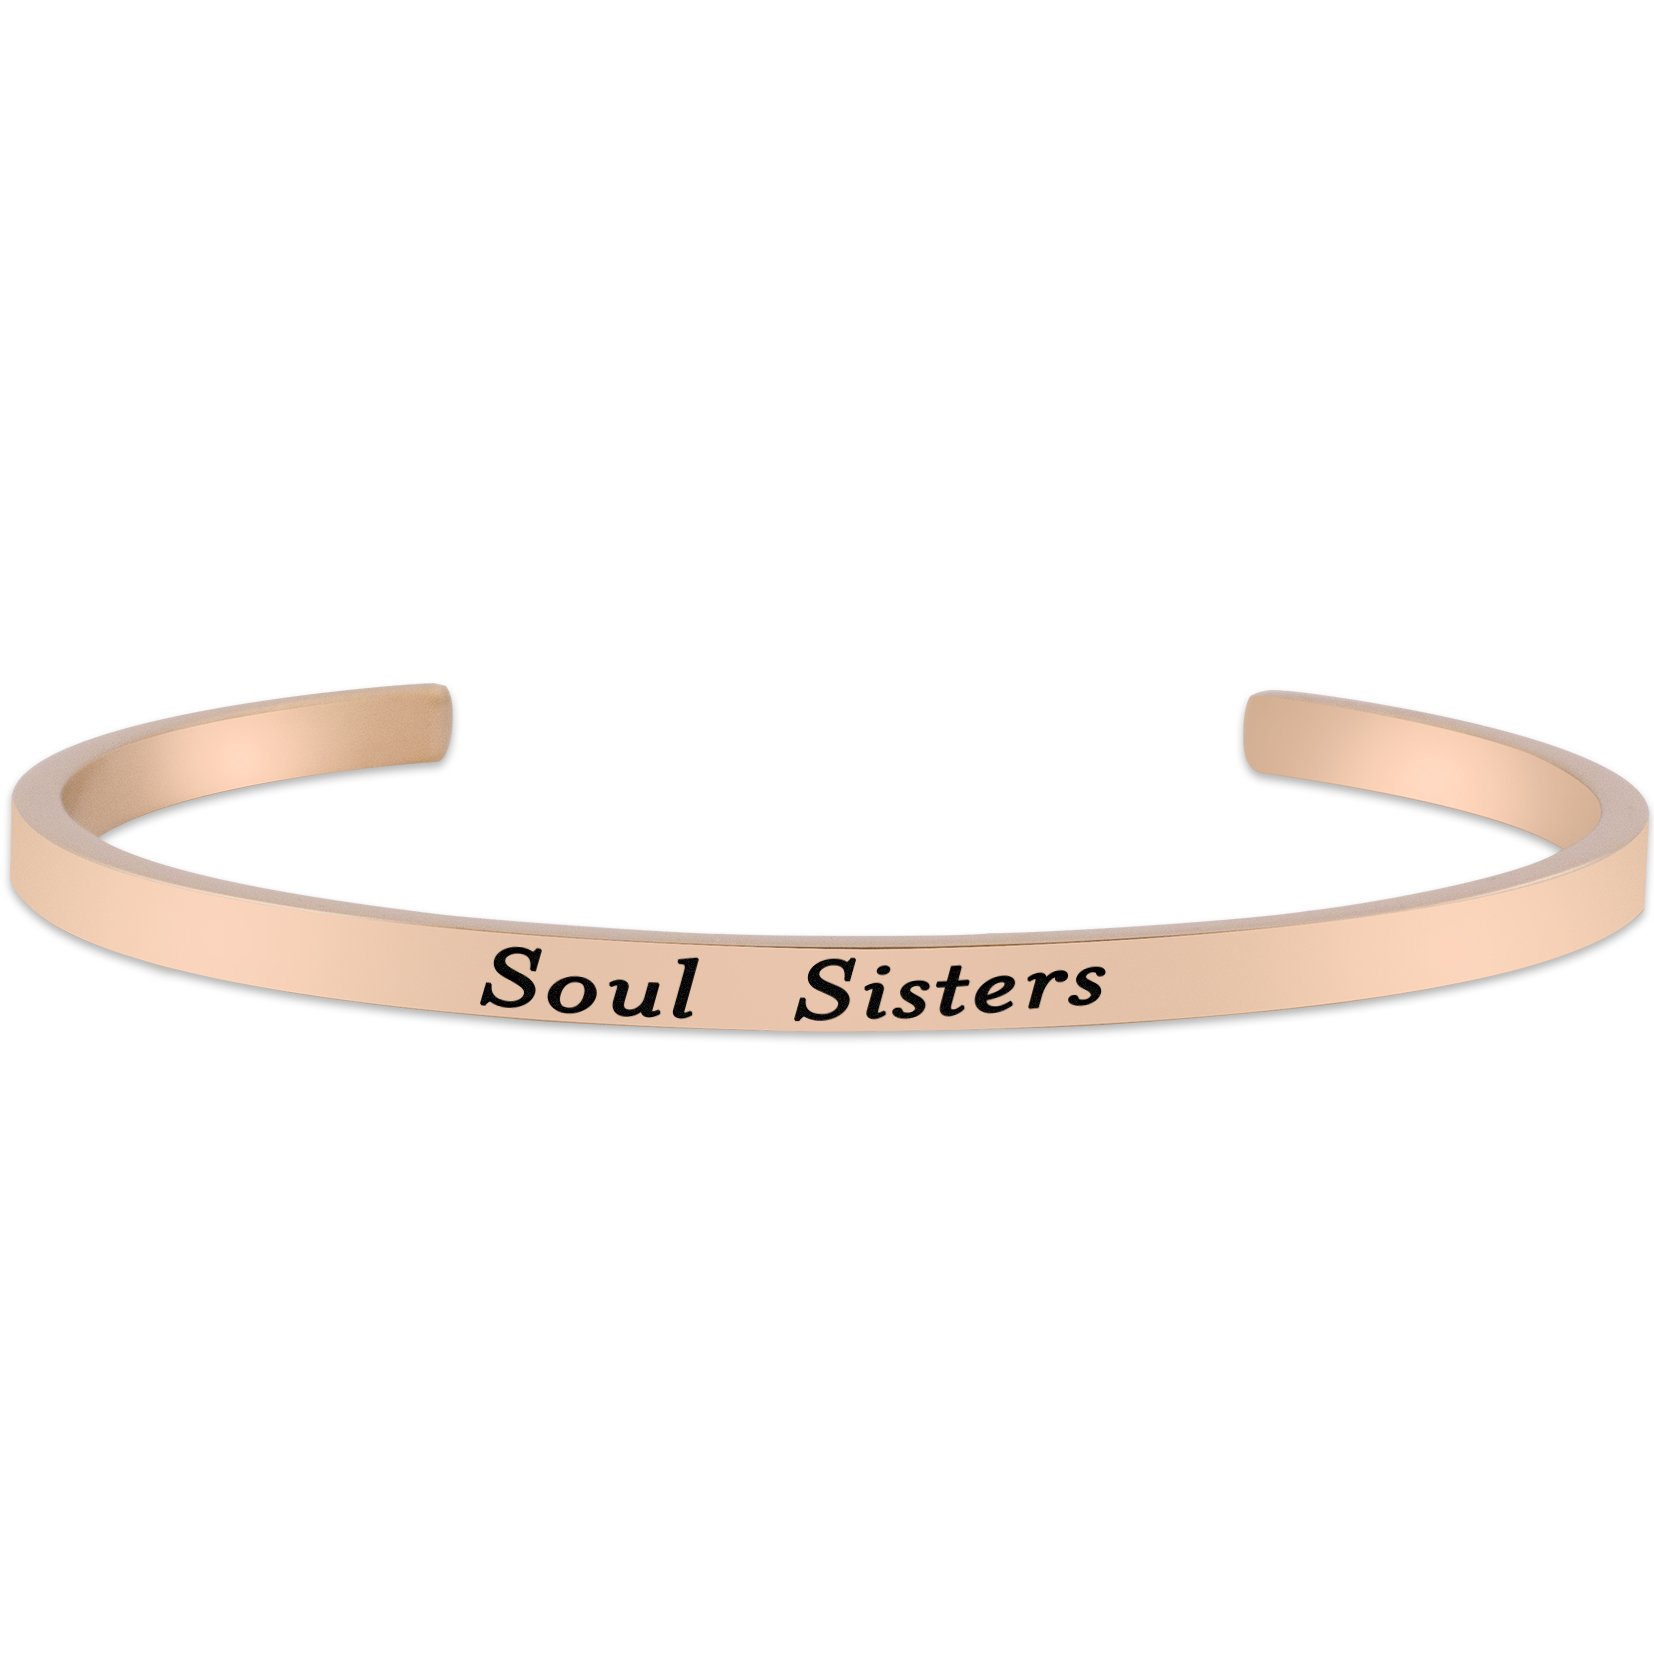 Lademayh Soul Sisters Friendship Bracelet Stainless Steel Inspirational Mantra Bracelets for Sister, Rose Gold Personalized Bracelets Jewelry